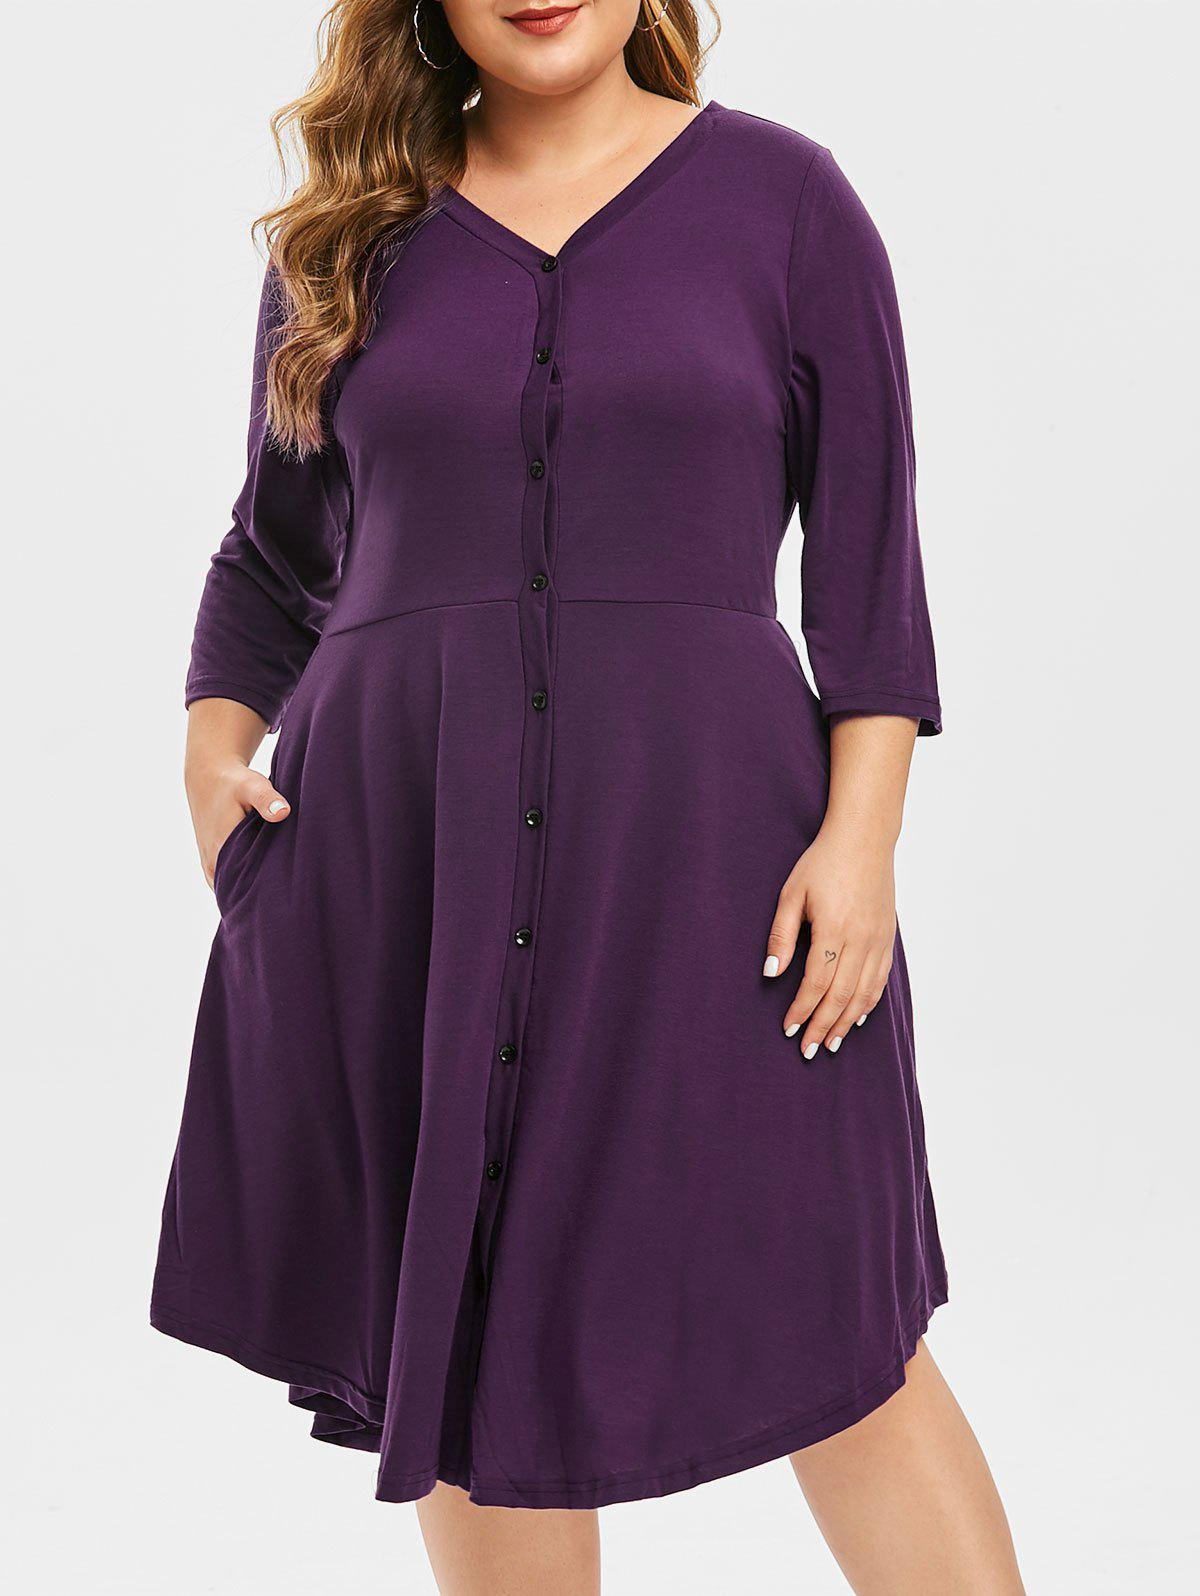 Plus Size Button Up Knee Length Dress - DARK ORCHID L